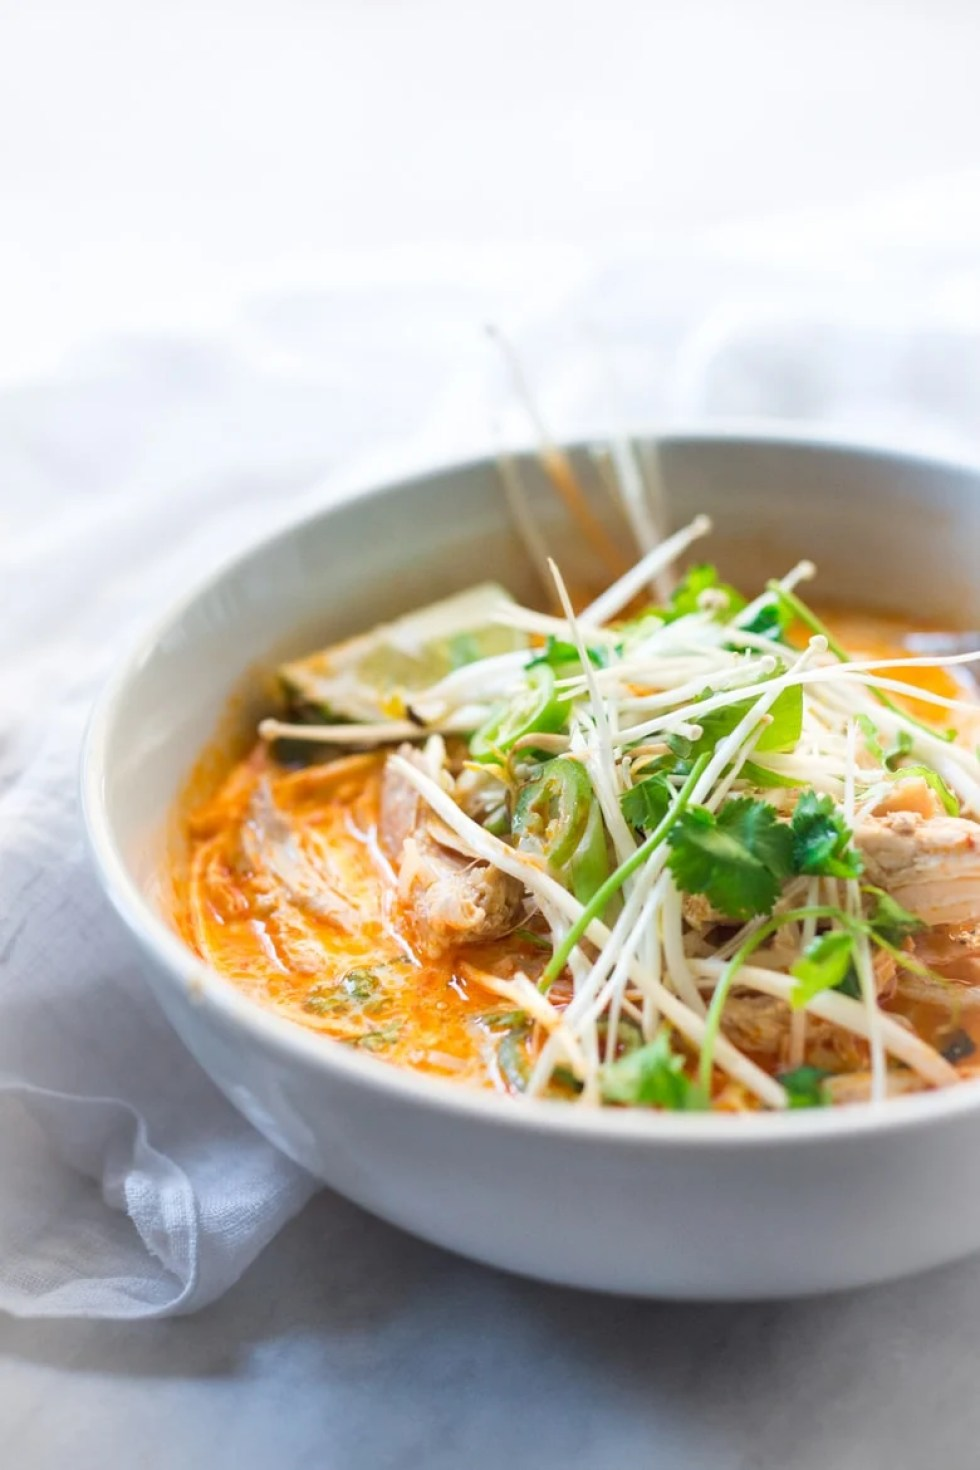 Laksa Soup + Plus 10 Warming SOUTH EAST ASIAN RECIPES to help take the chill out of winter | www.feastingathome.com